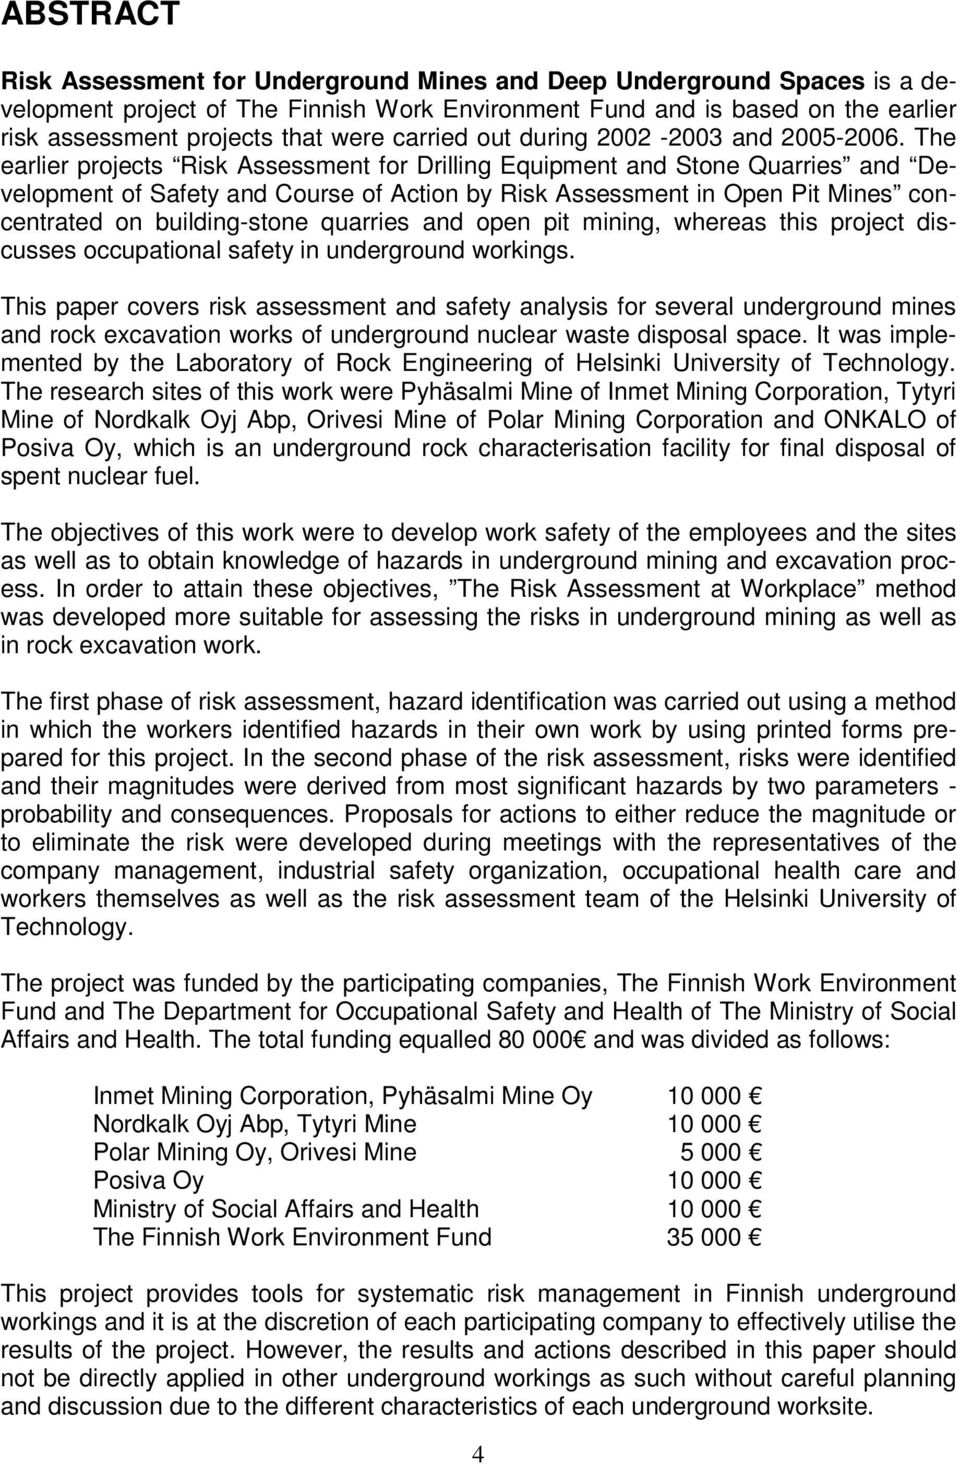 The earlier projects Risk Assessment for Drilling Equipment and Stone Quarries and Development of Safety and Course of Action by Risk Assessment in Open Pit Mines concentrated on building-stone